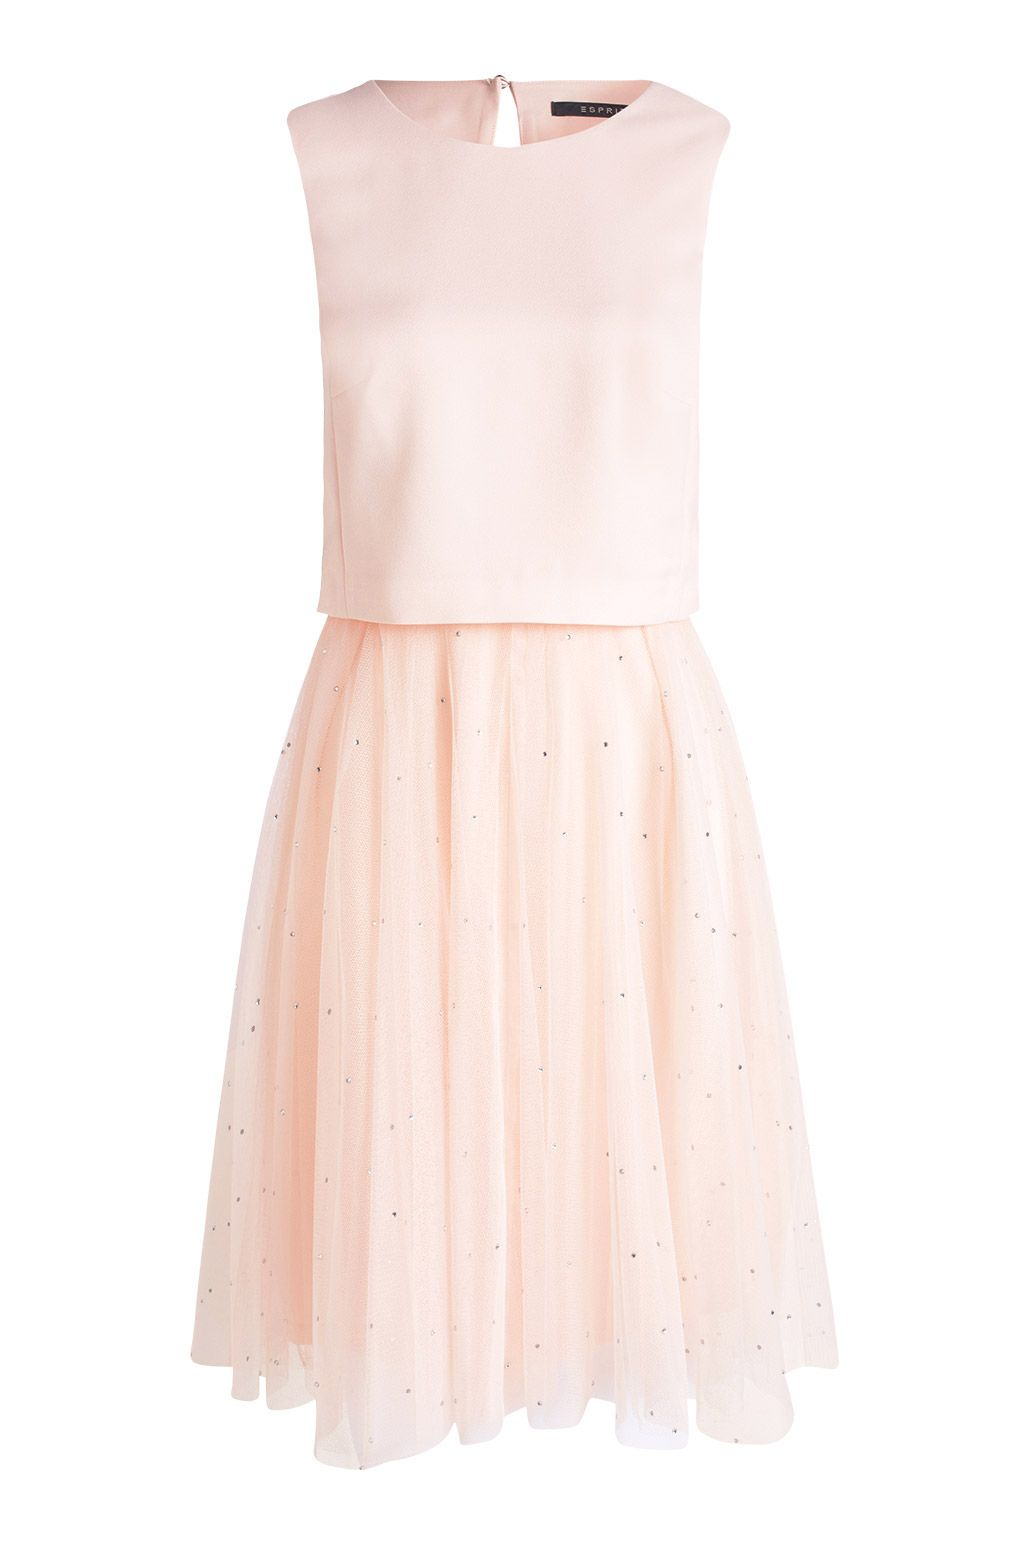 Robe ceremonie rose esprit tutu